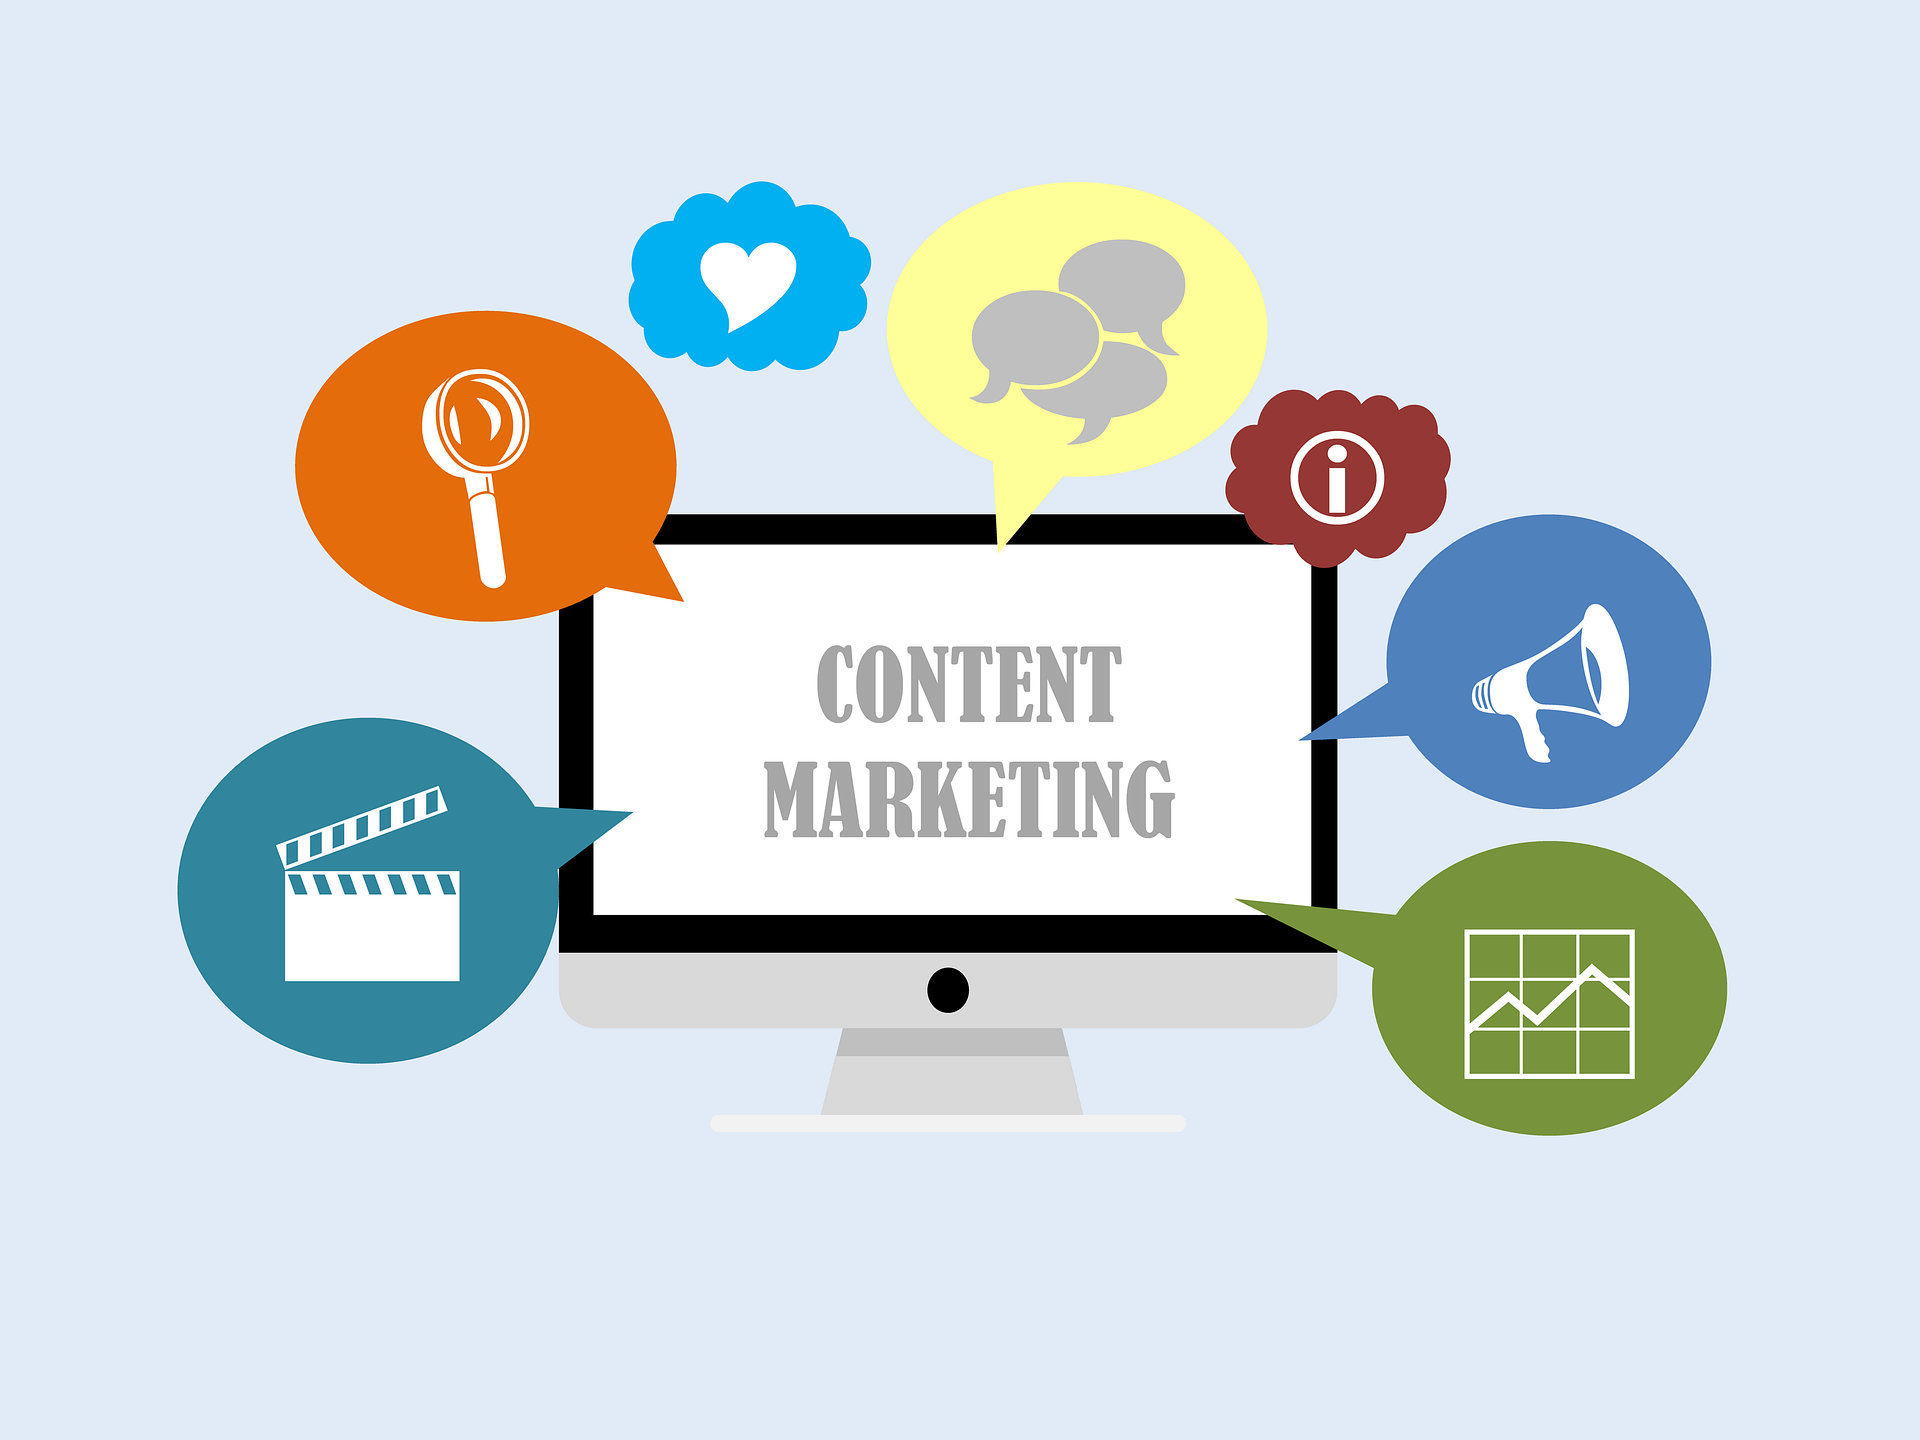 advantages-content-marketing-strategy-digital-marketing-trends